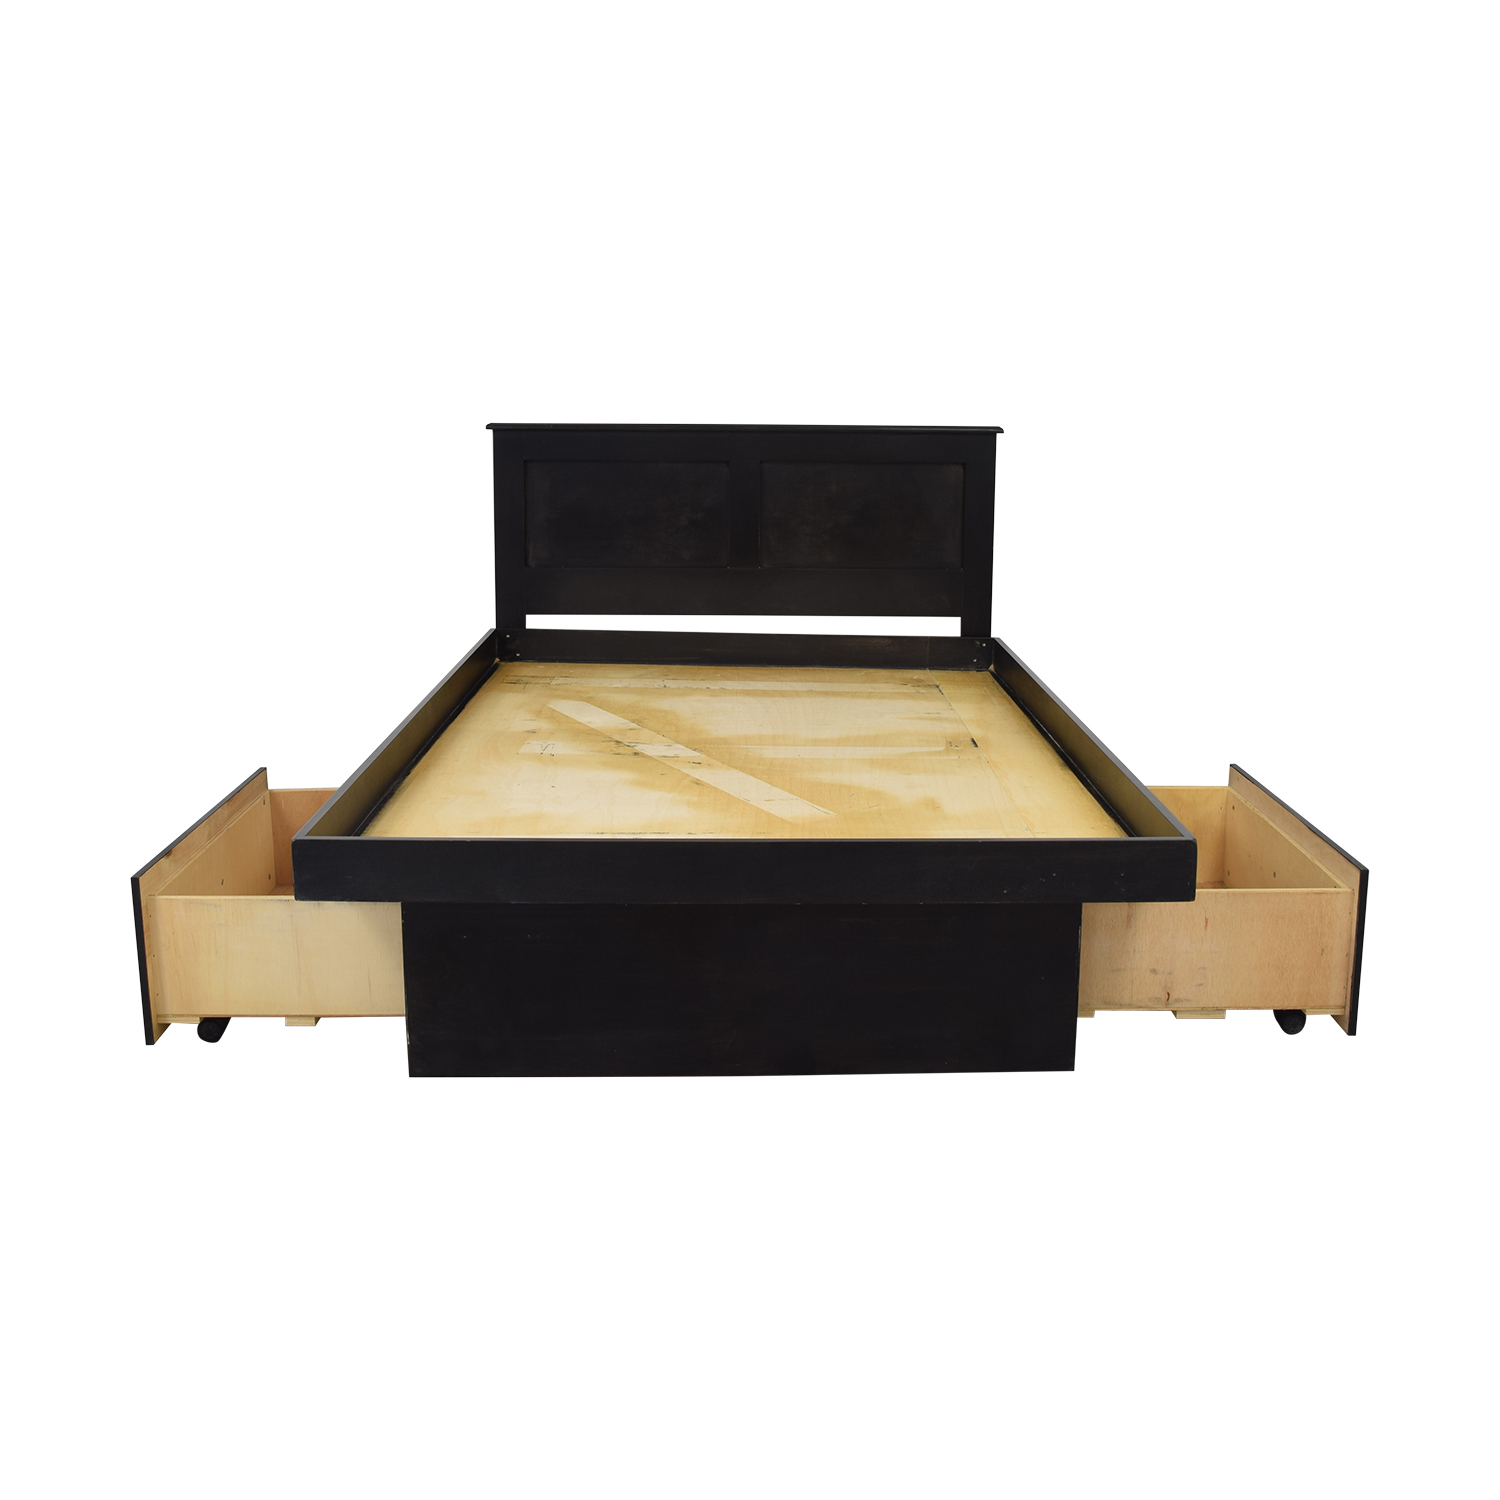 Gothic Cabinet Craft Full Platform Bed with Drawers sale